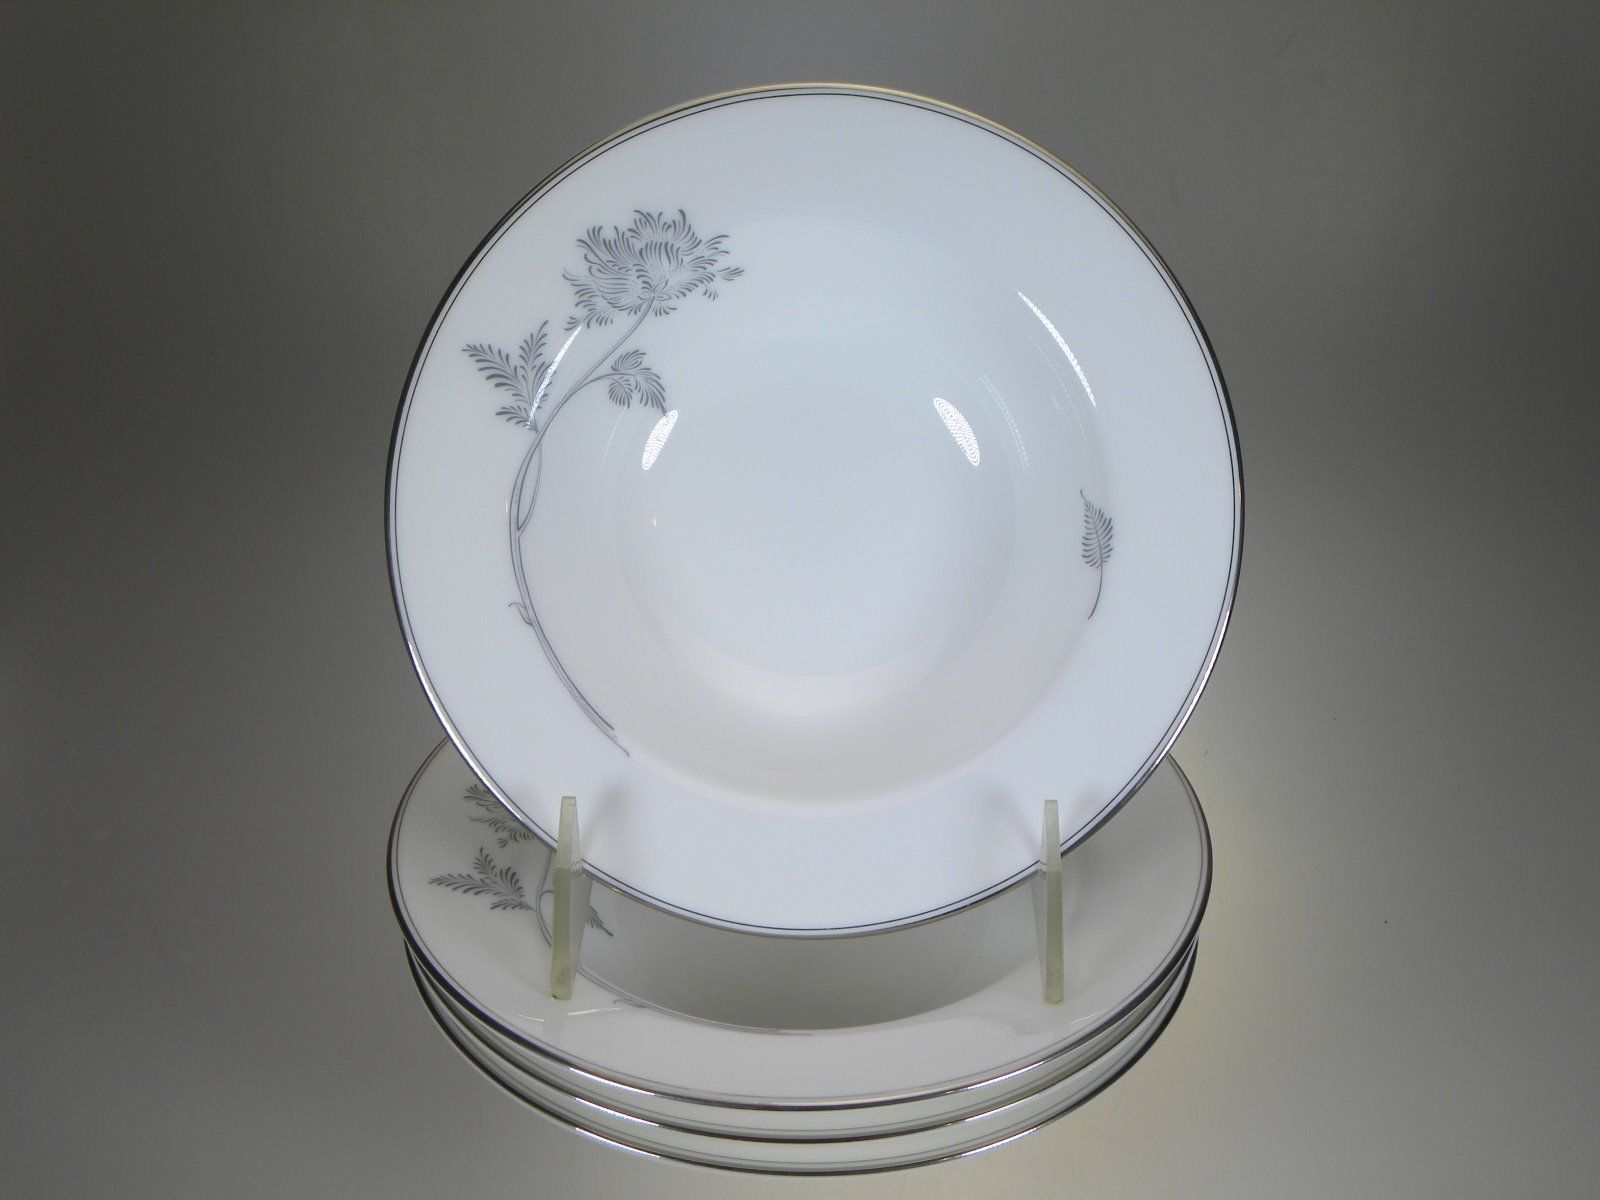 Royal Doulton Allure Platinum Fruit Bowls Set of 4 NEW WITH TAGS - $36.14